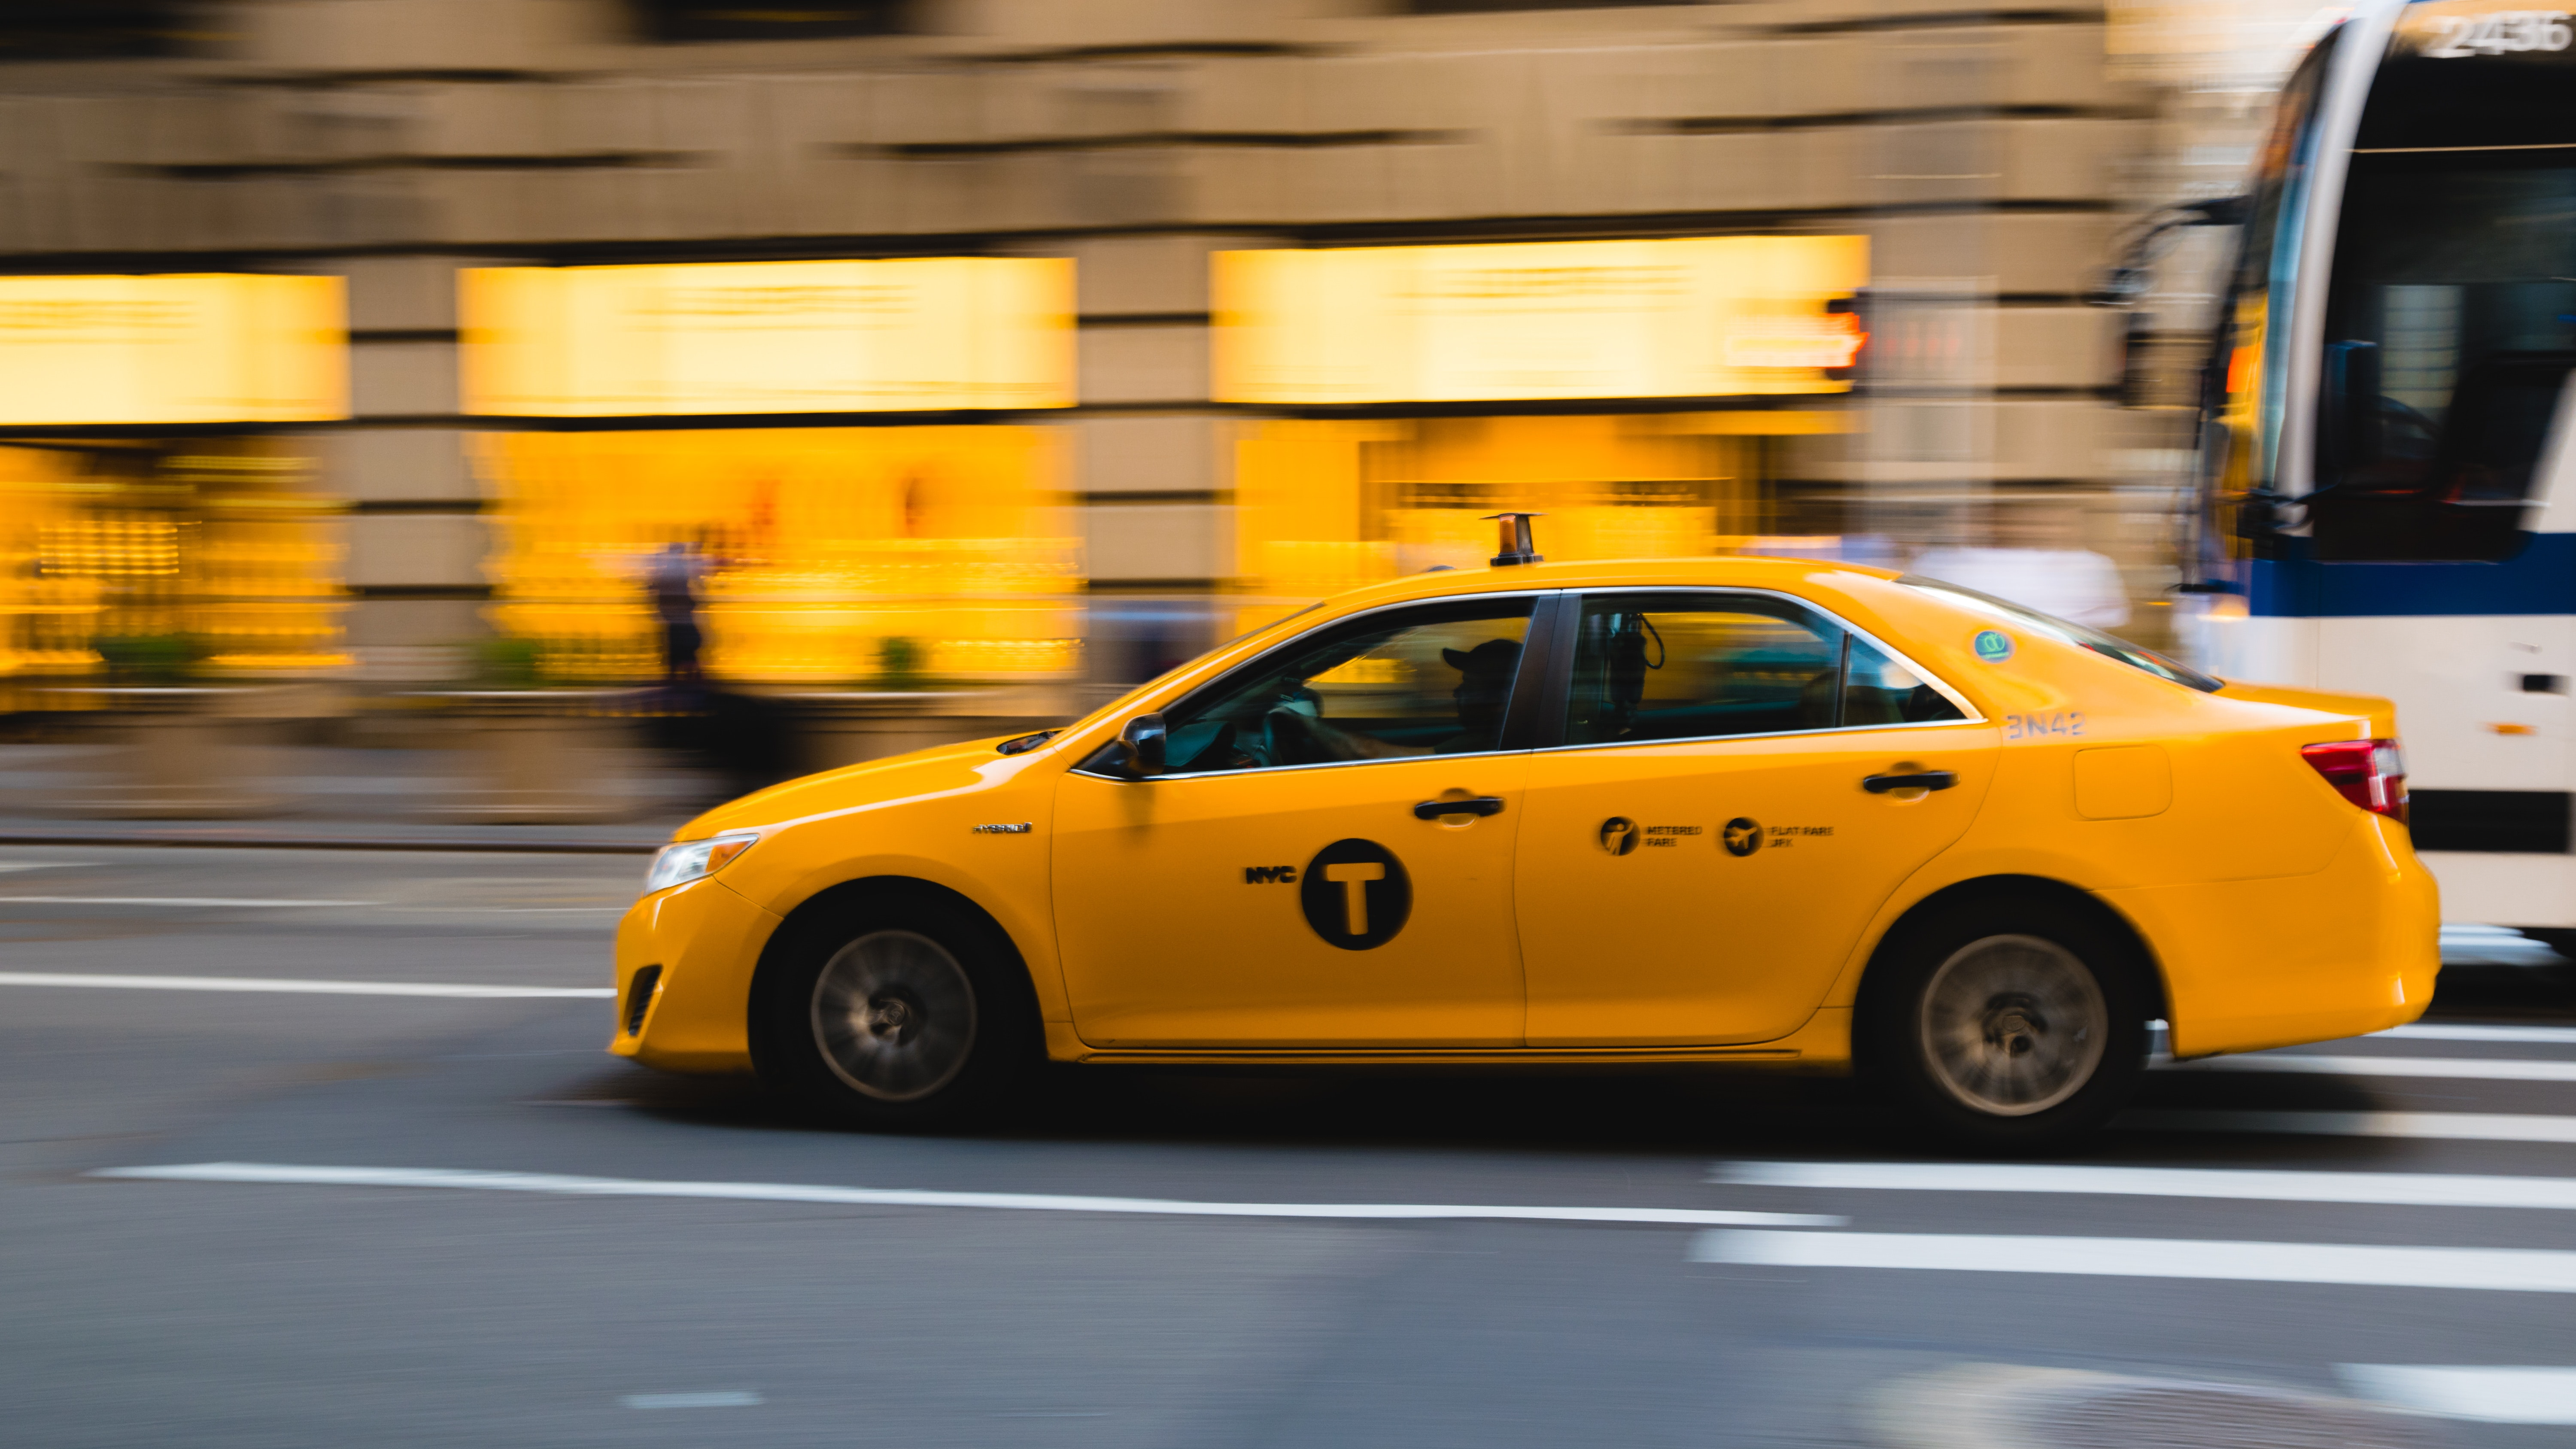 Taxi Overtaking Bus, Architecture, Motion, Vehicles, Urban, HQ Photo